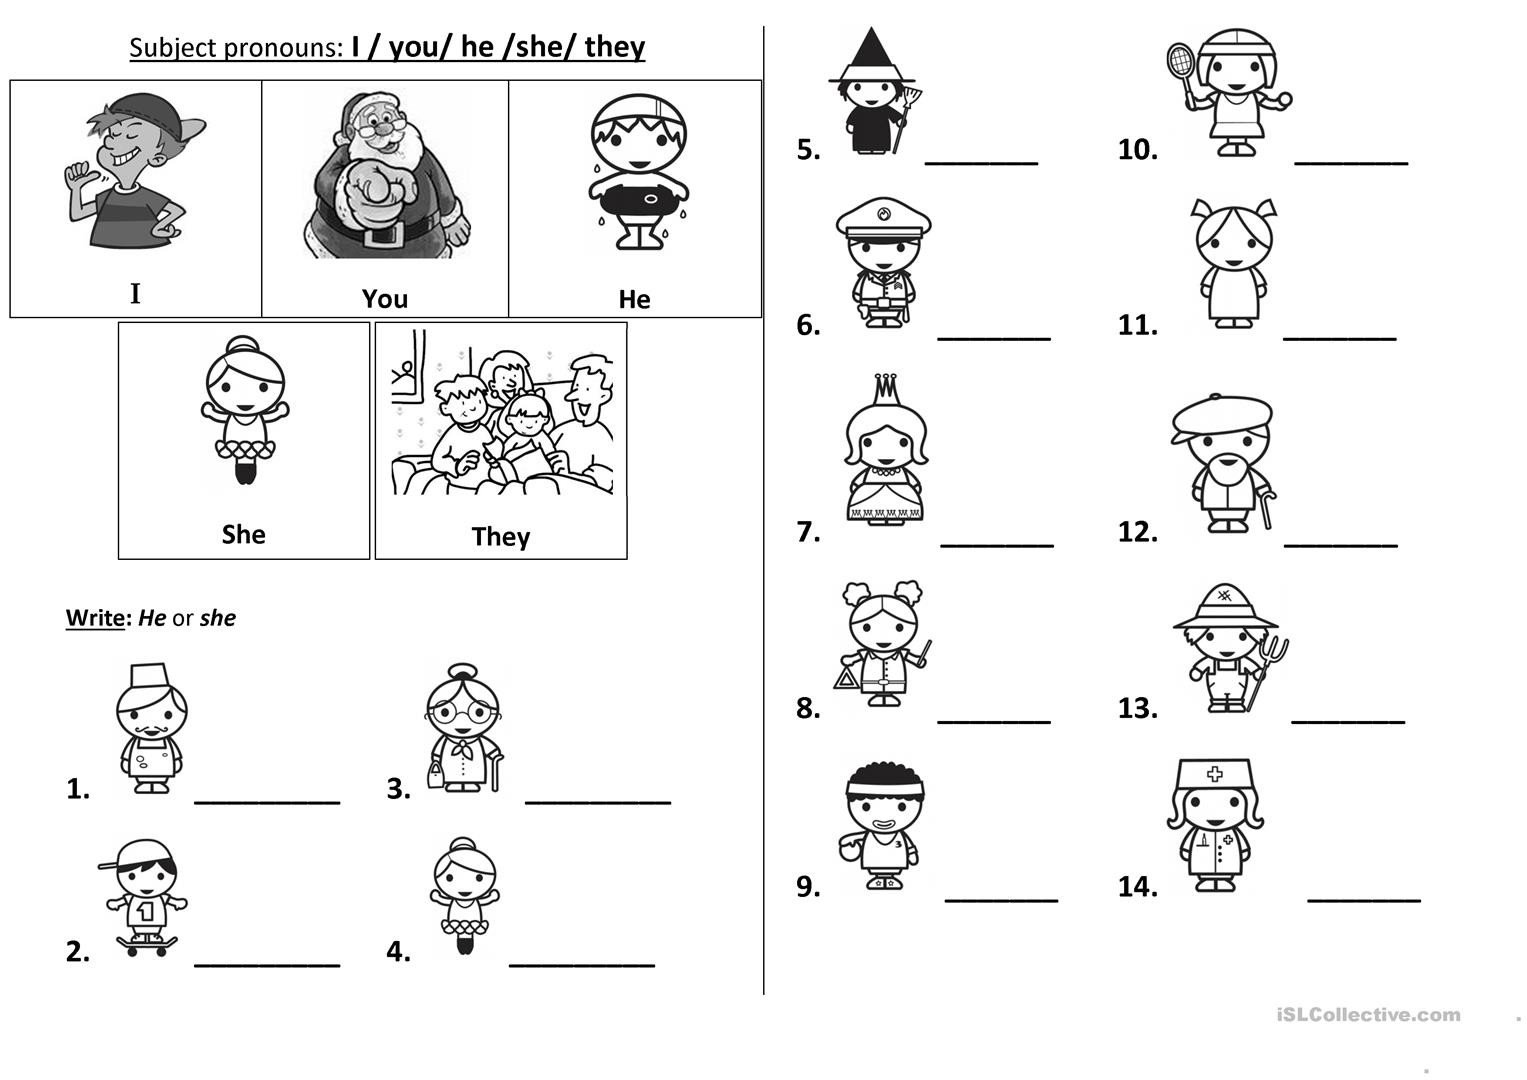 subject pronouns worksheet free esl printable worksheets made by